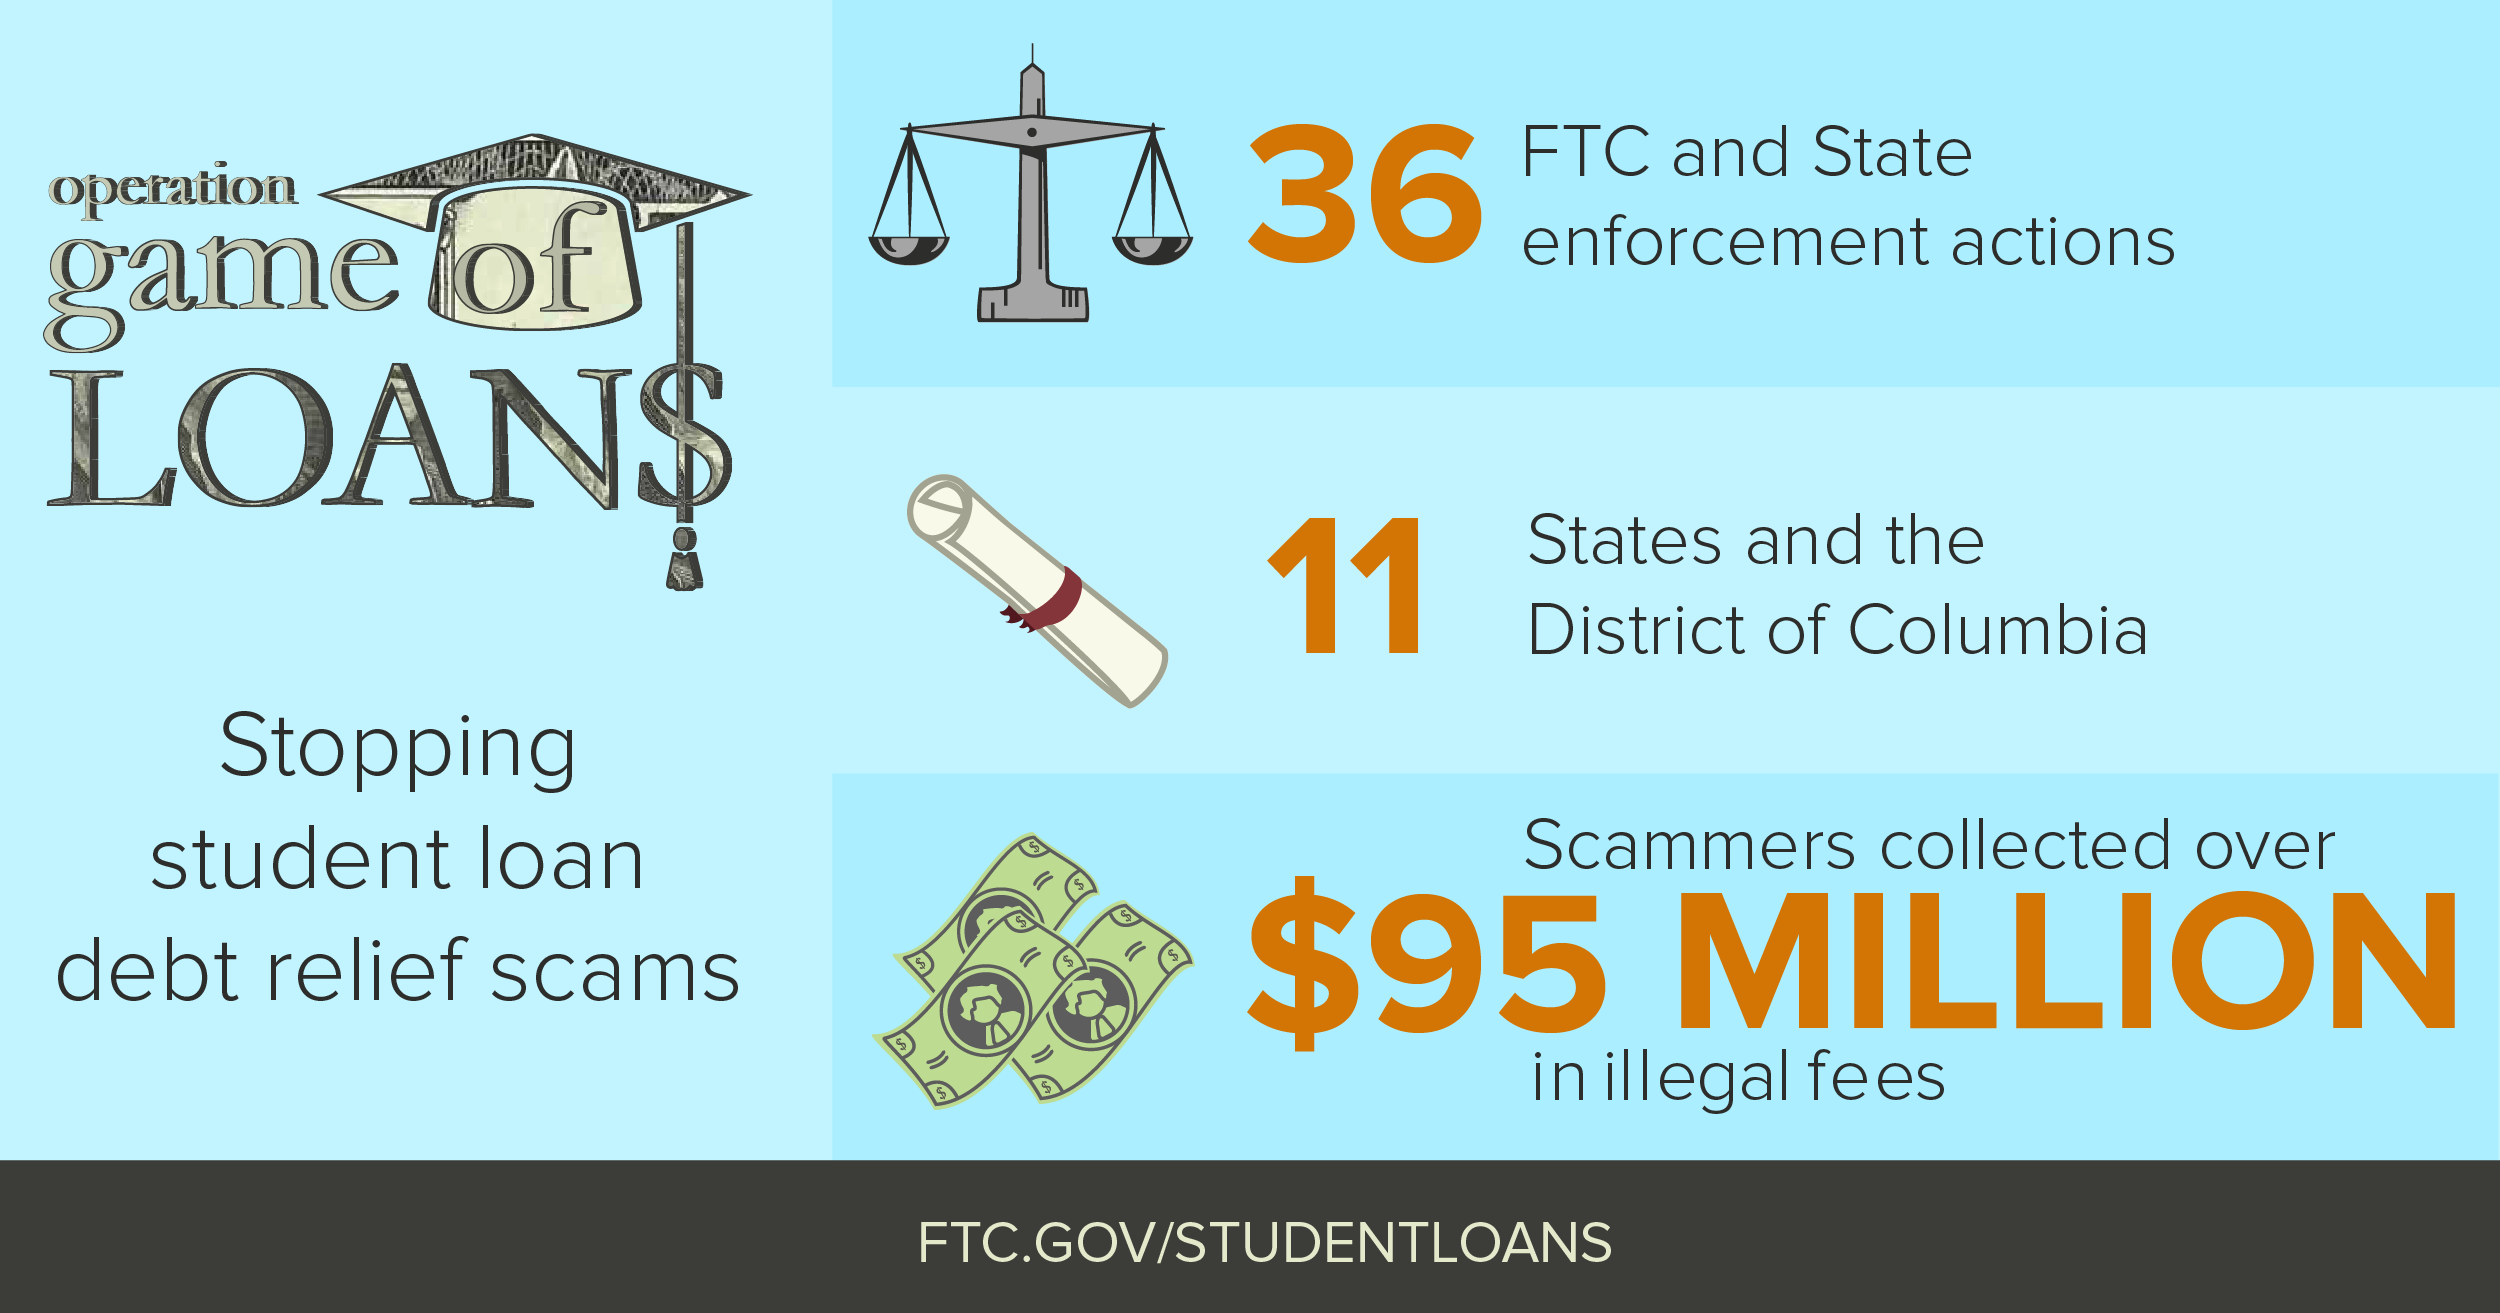 An infographic detailing the  amount of penalty money collected by FTC, the number of states affected and amounts of fees collected by scammers